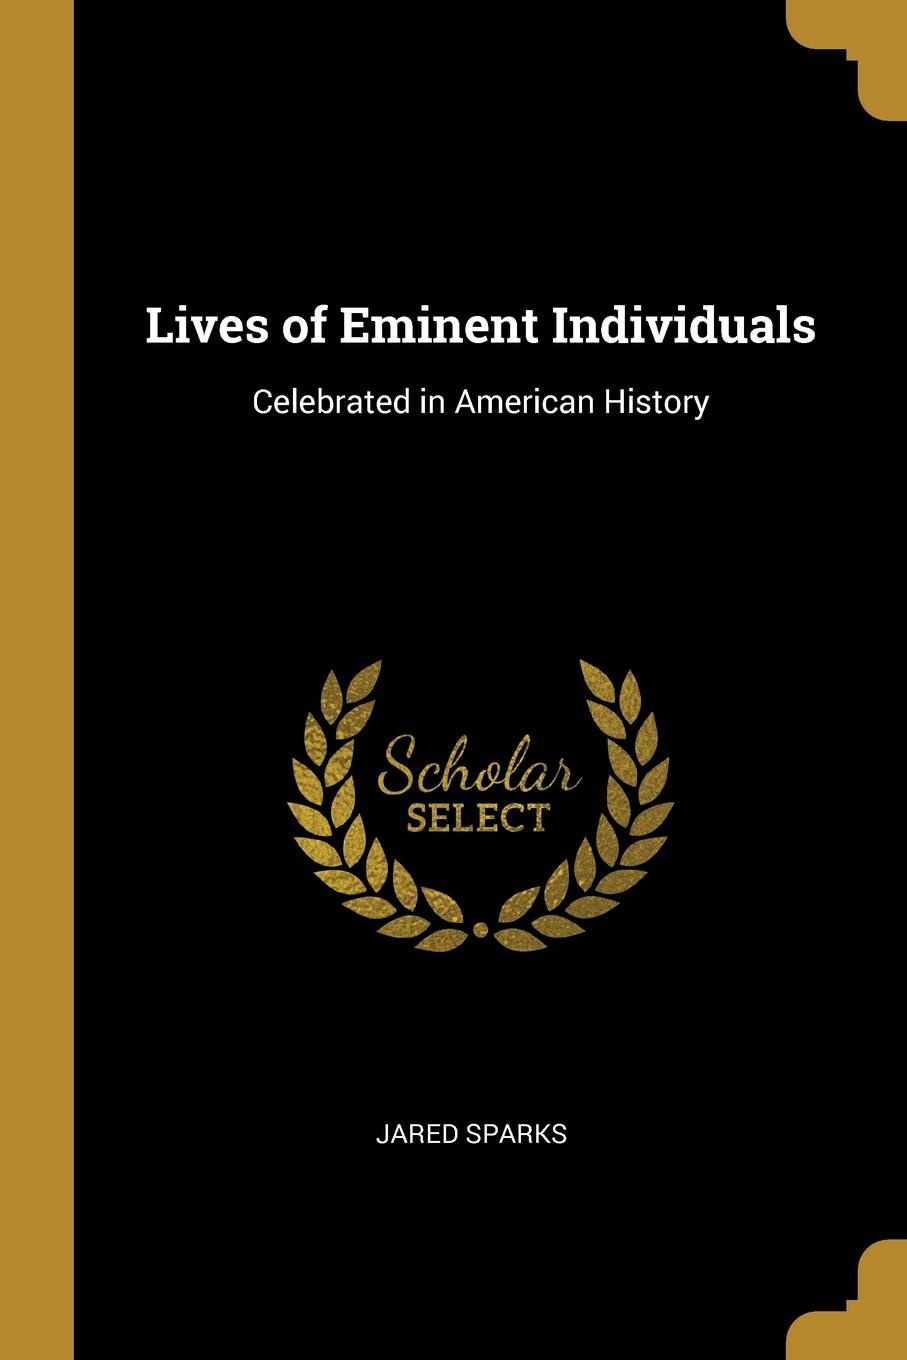 Jared Sparks. Lives of Eminent Individuals. Celebrated in American History